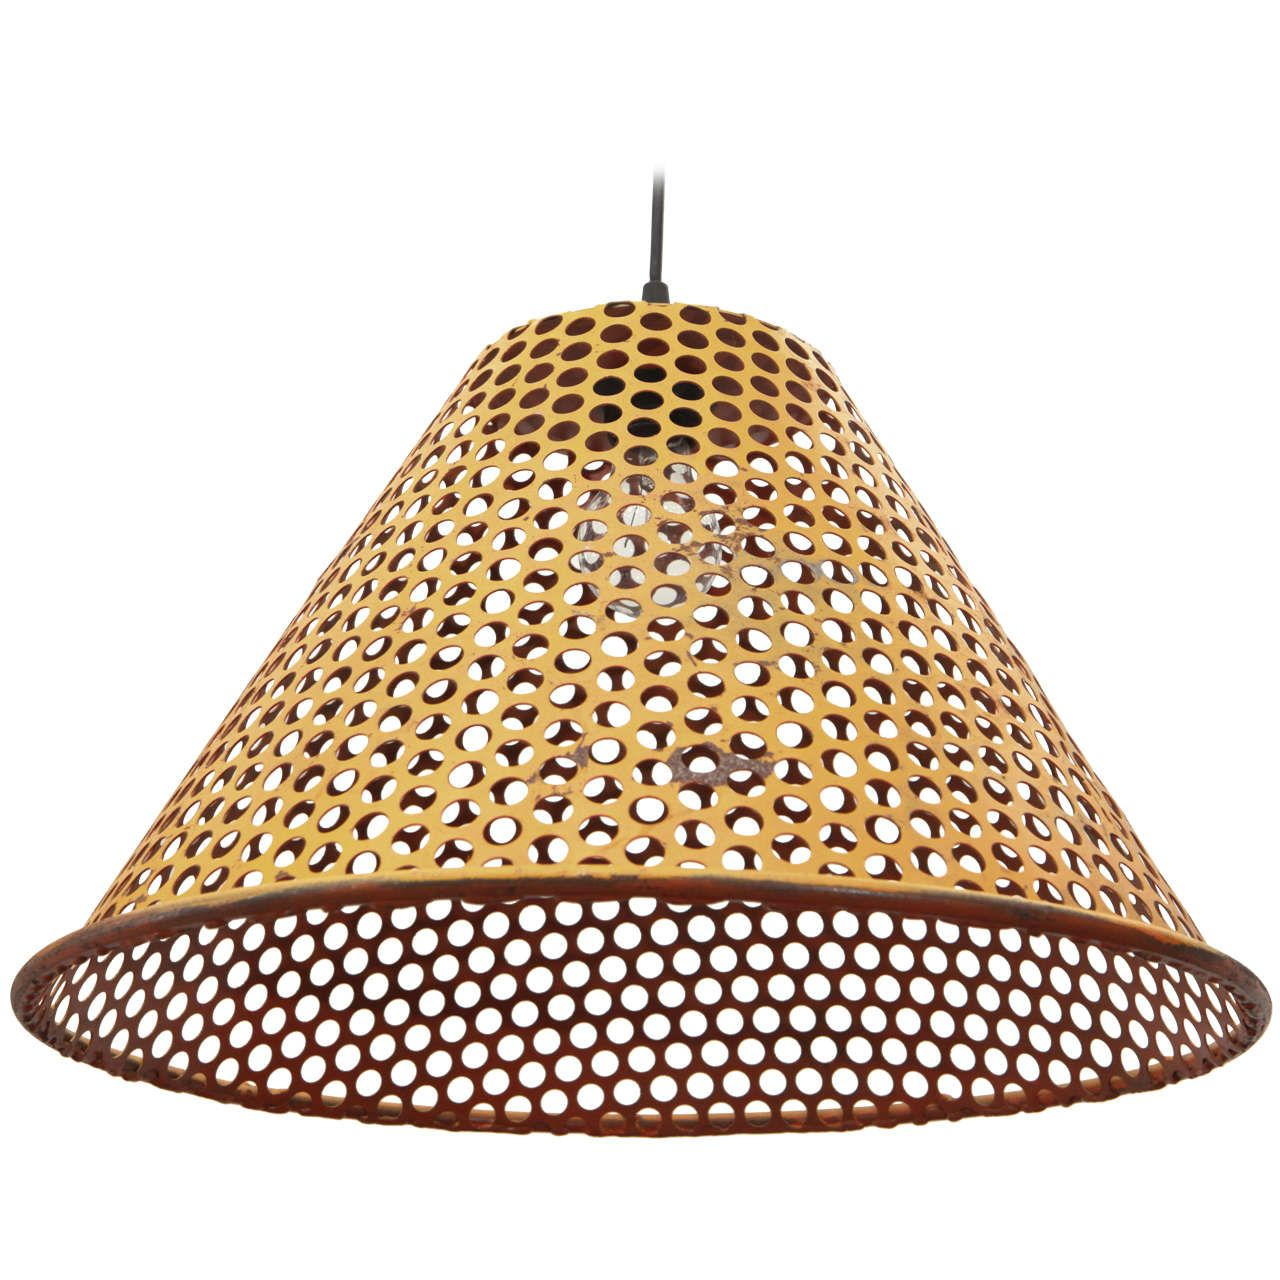 Yellow metal perforated pendant pendant lighting metals and